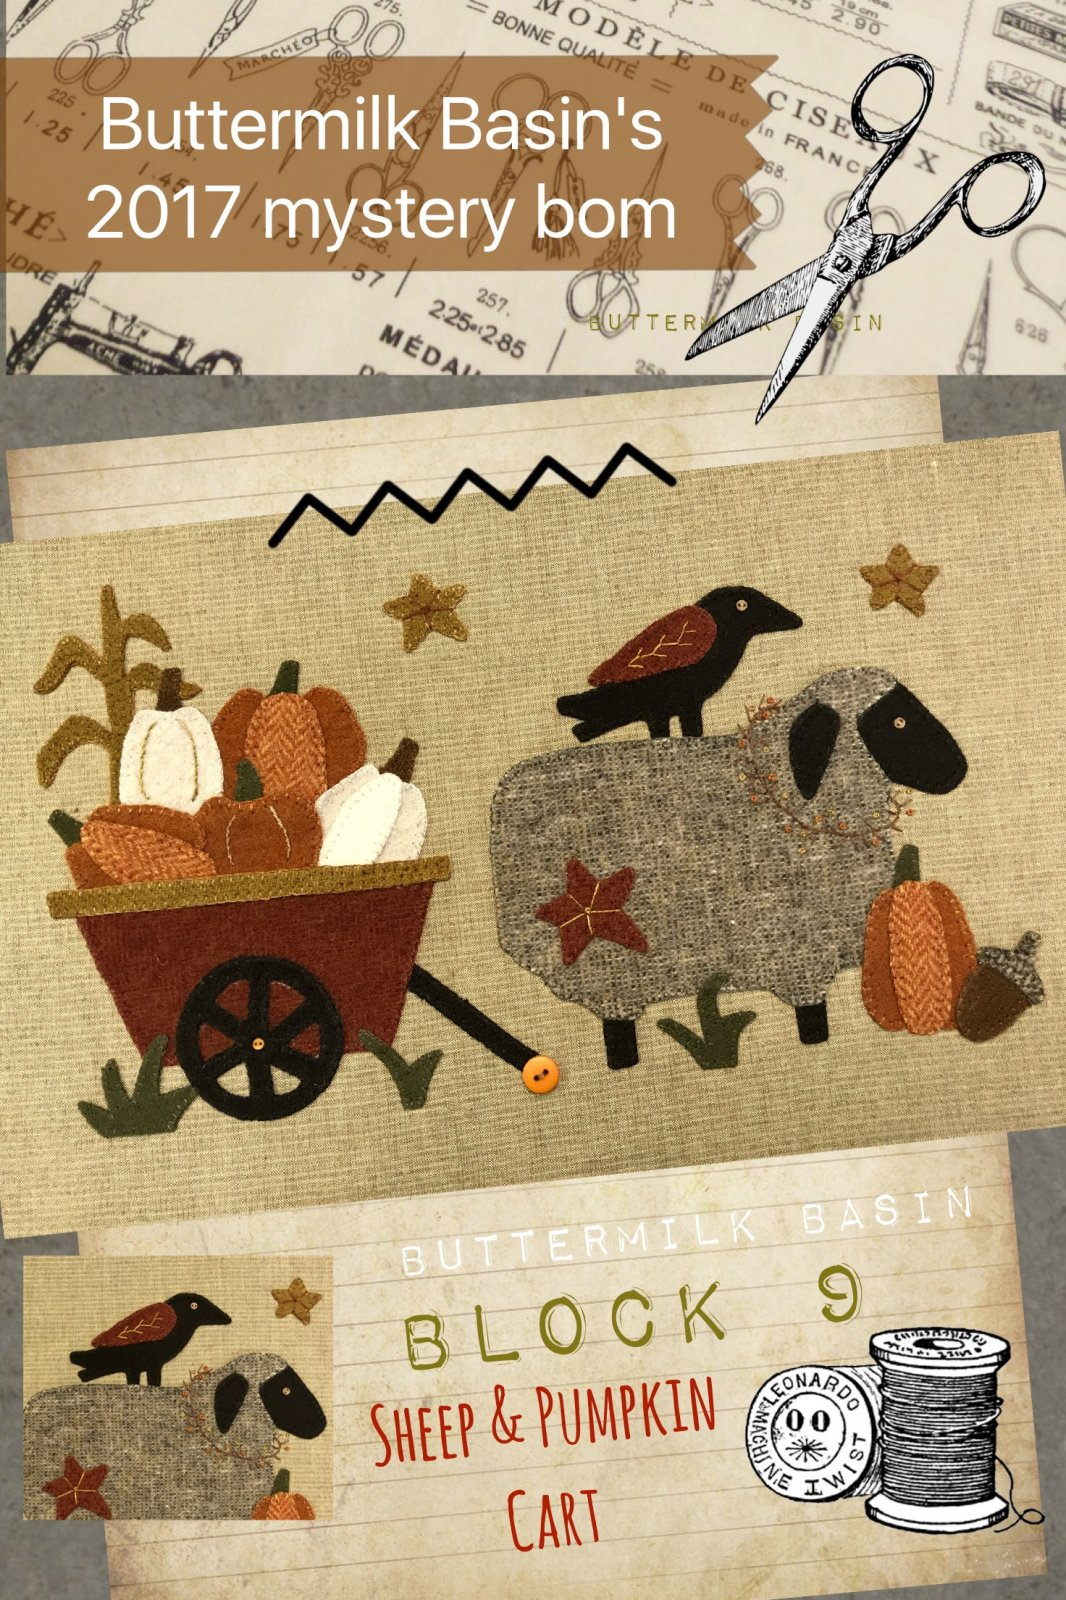 LIVE EACH SEASON Block 9 WOOL & Fabric KIT & Pattern